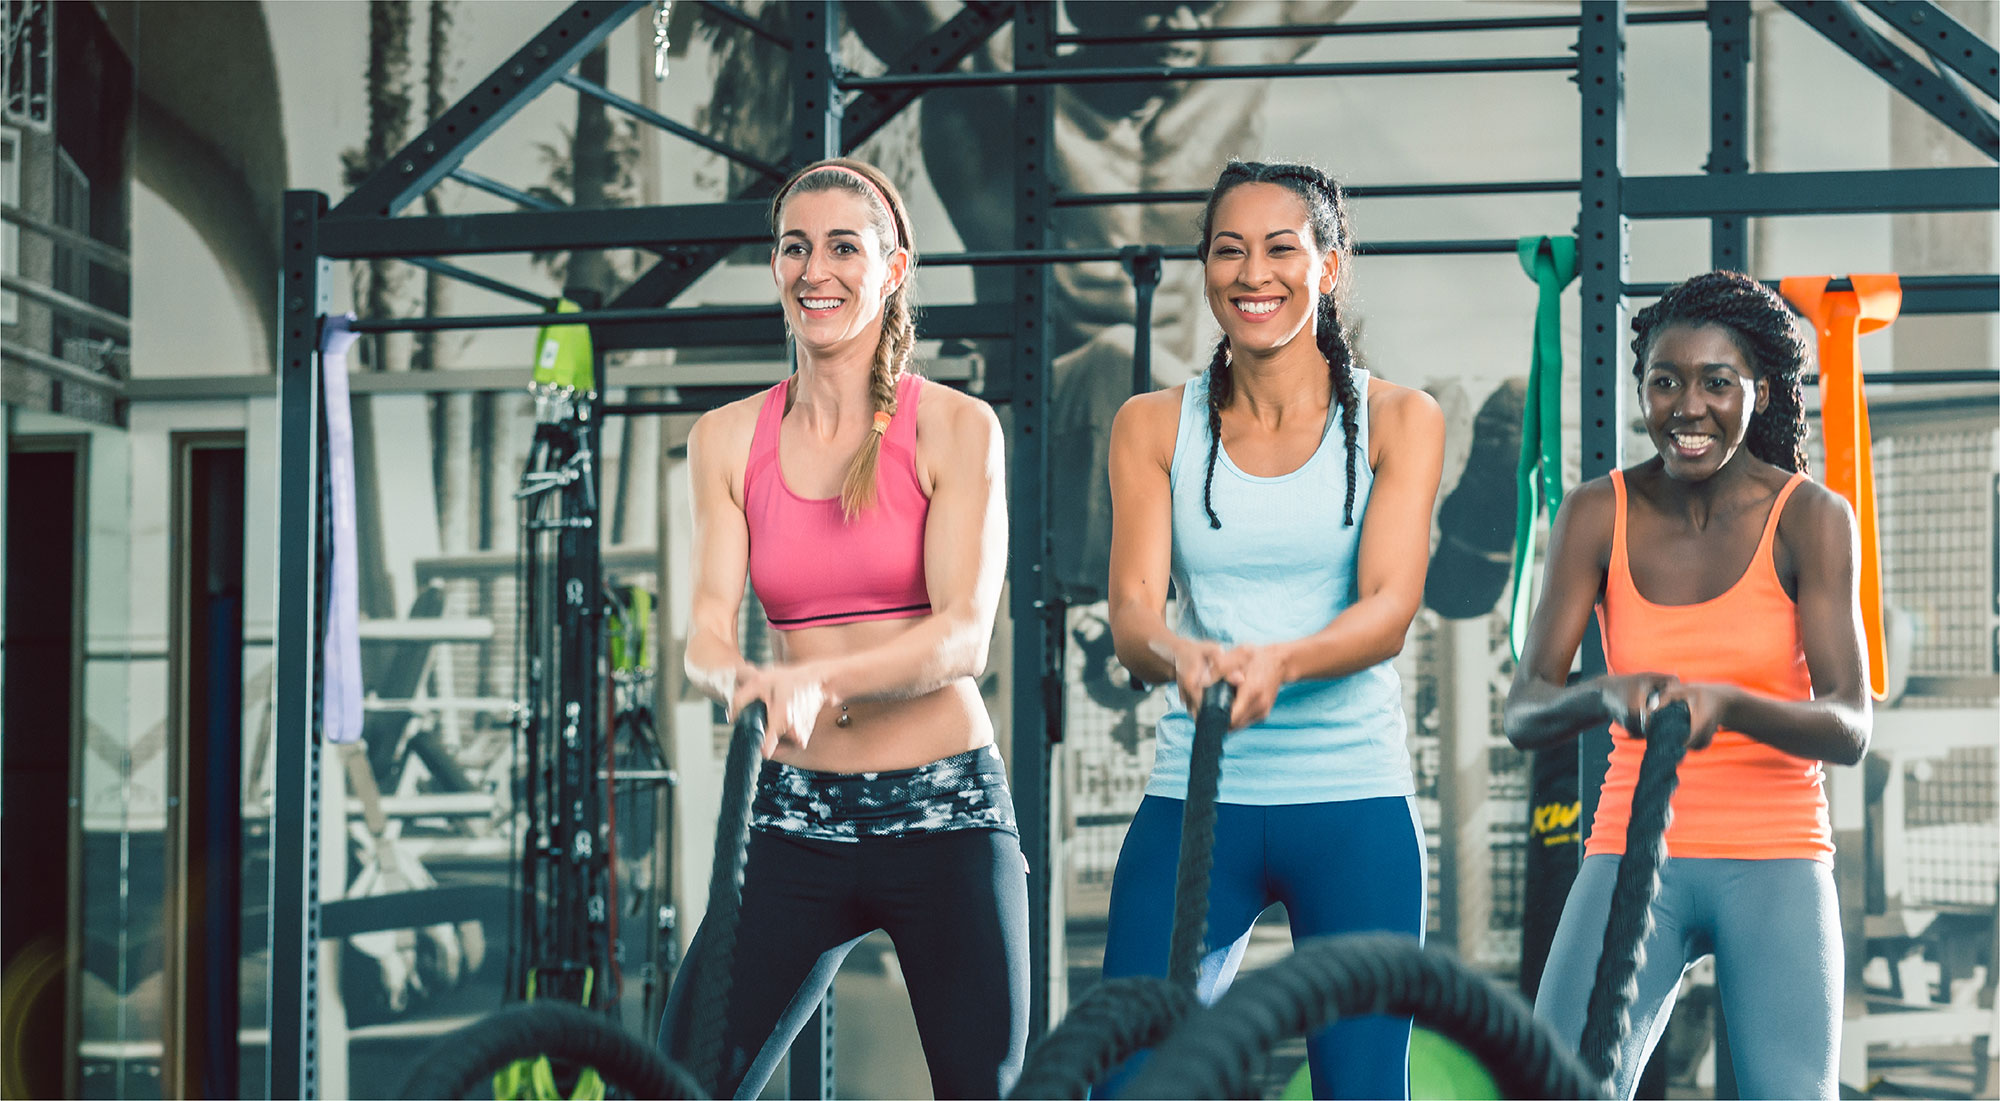 ukactive reveals how Government can support unlocking fitness and leisure sector to get over five million more people active by 2030